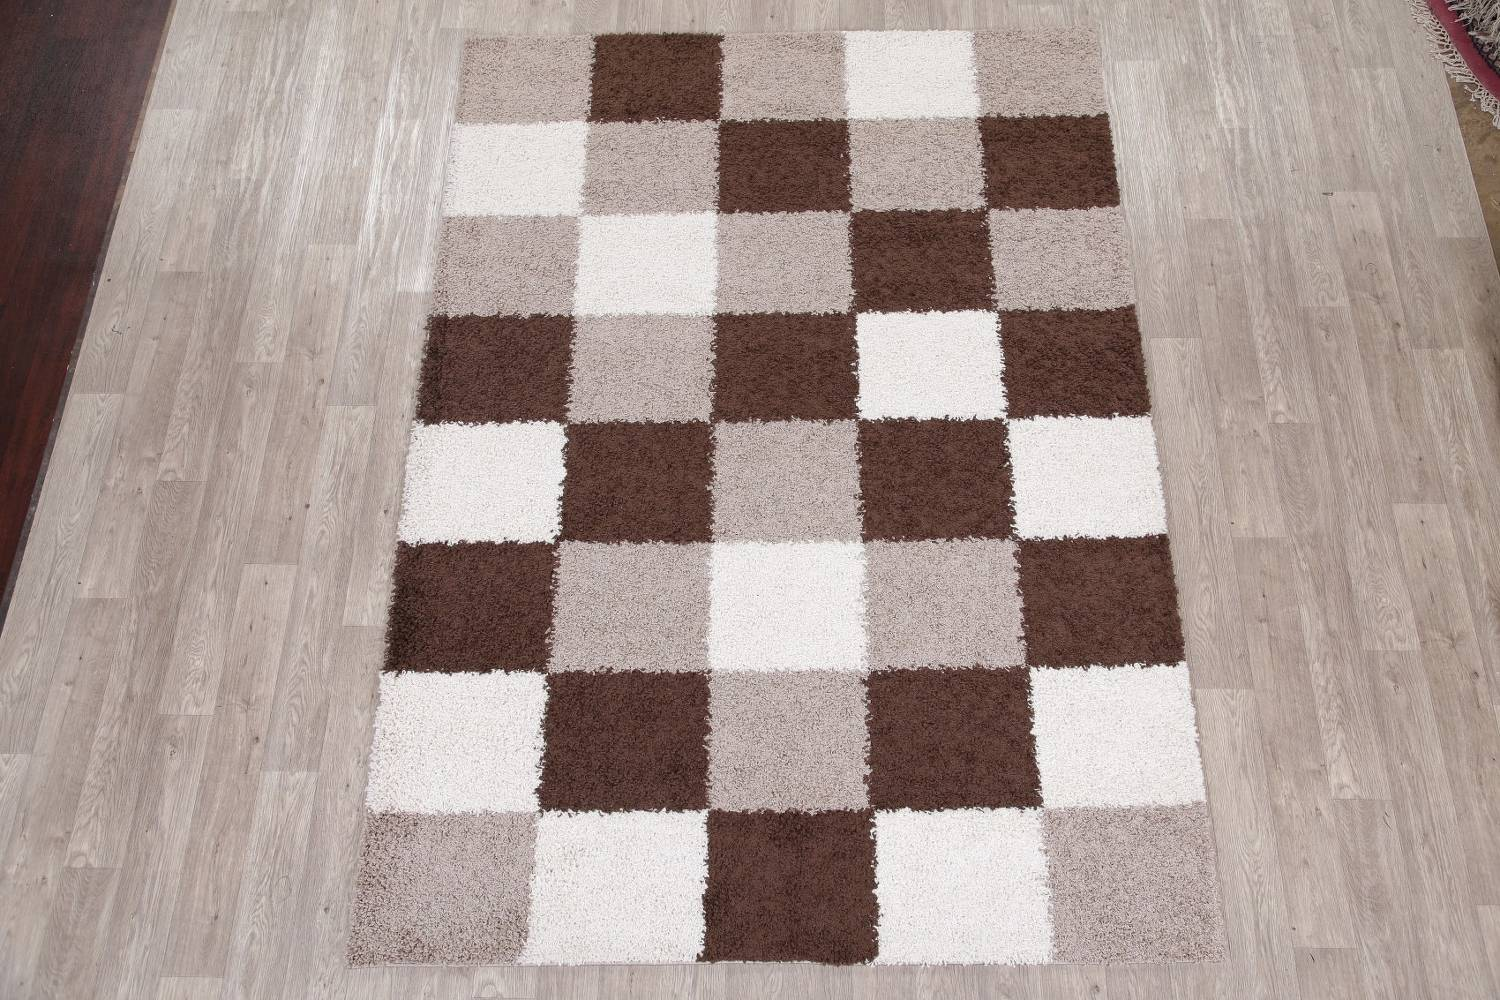 Checked Shaggy Turkish Oriental Rugs image 3